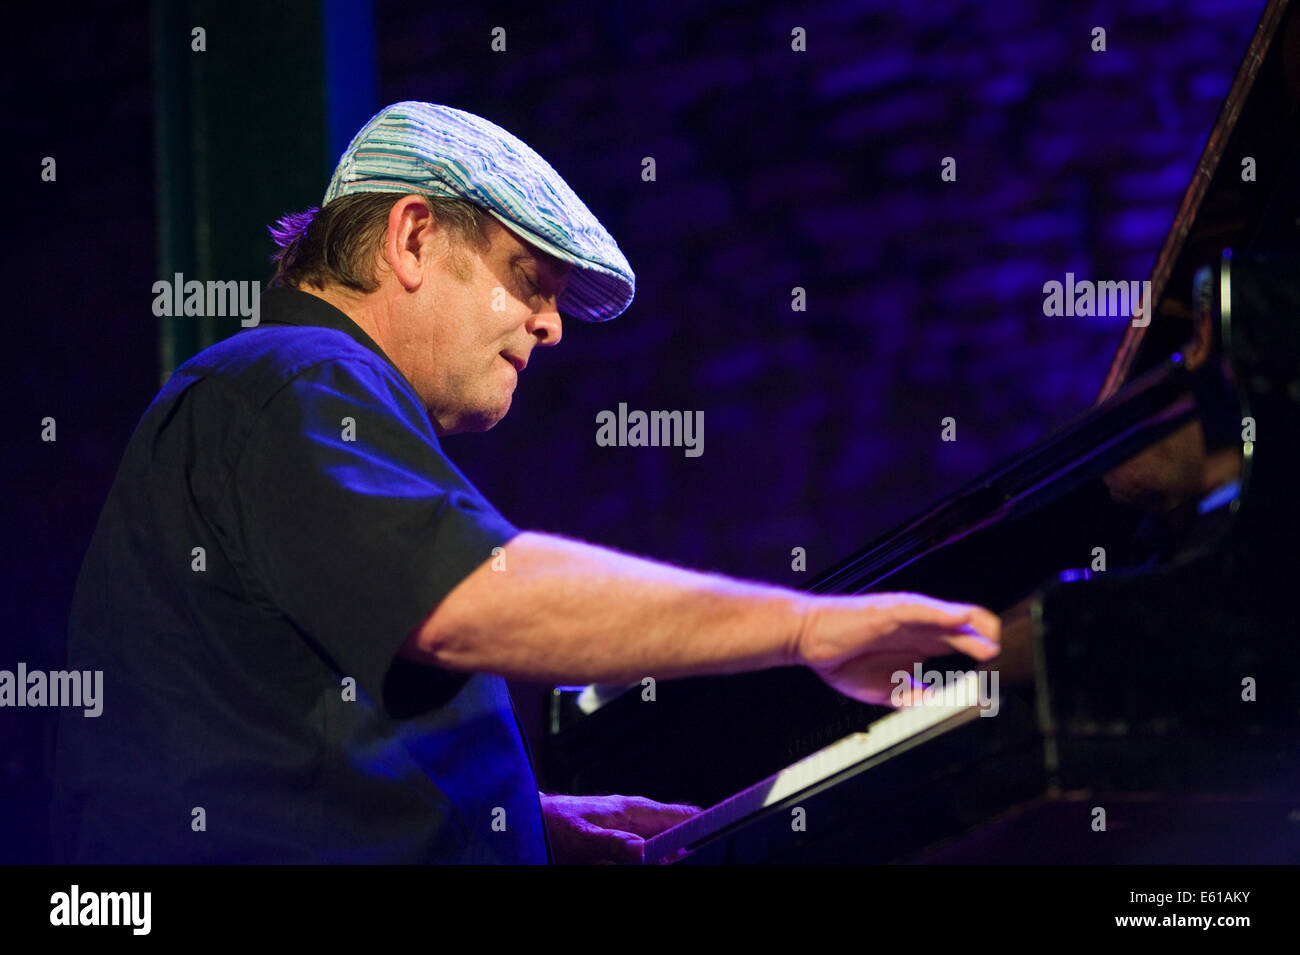 Pianist with Gregory Porter band performing on stage at Brecon Jazz Festival 2014 - Stock Image